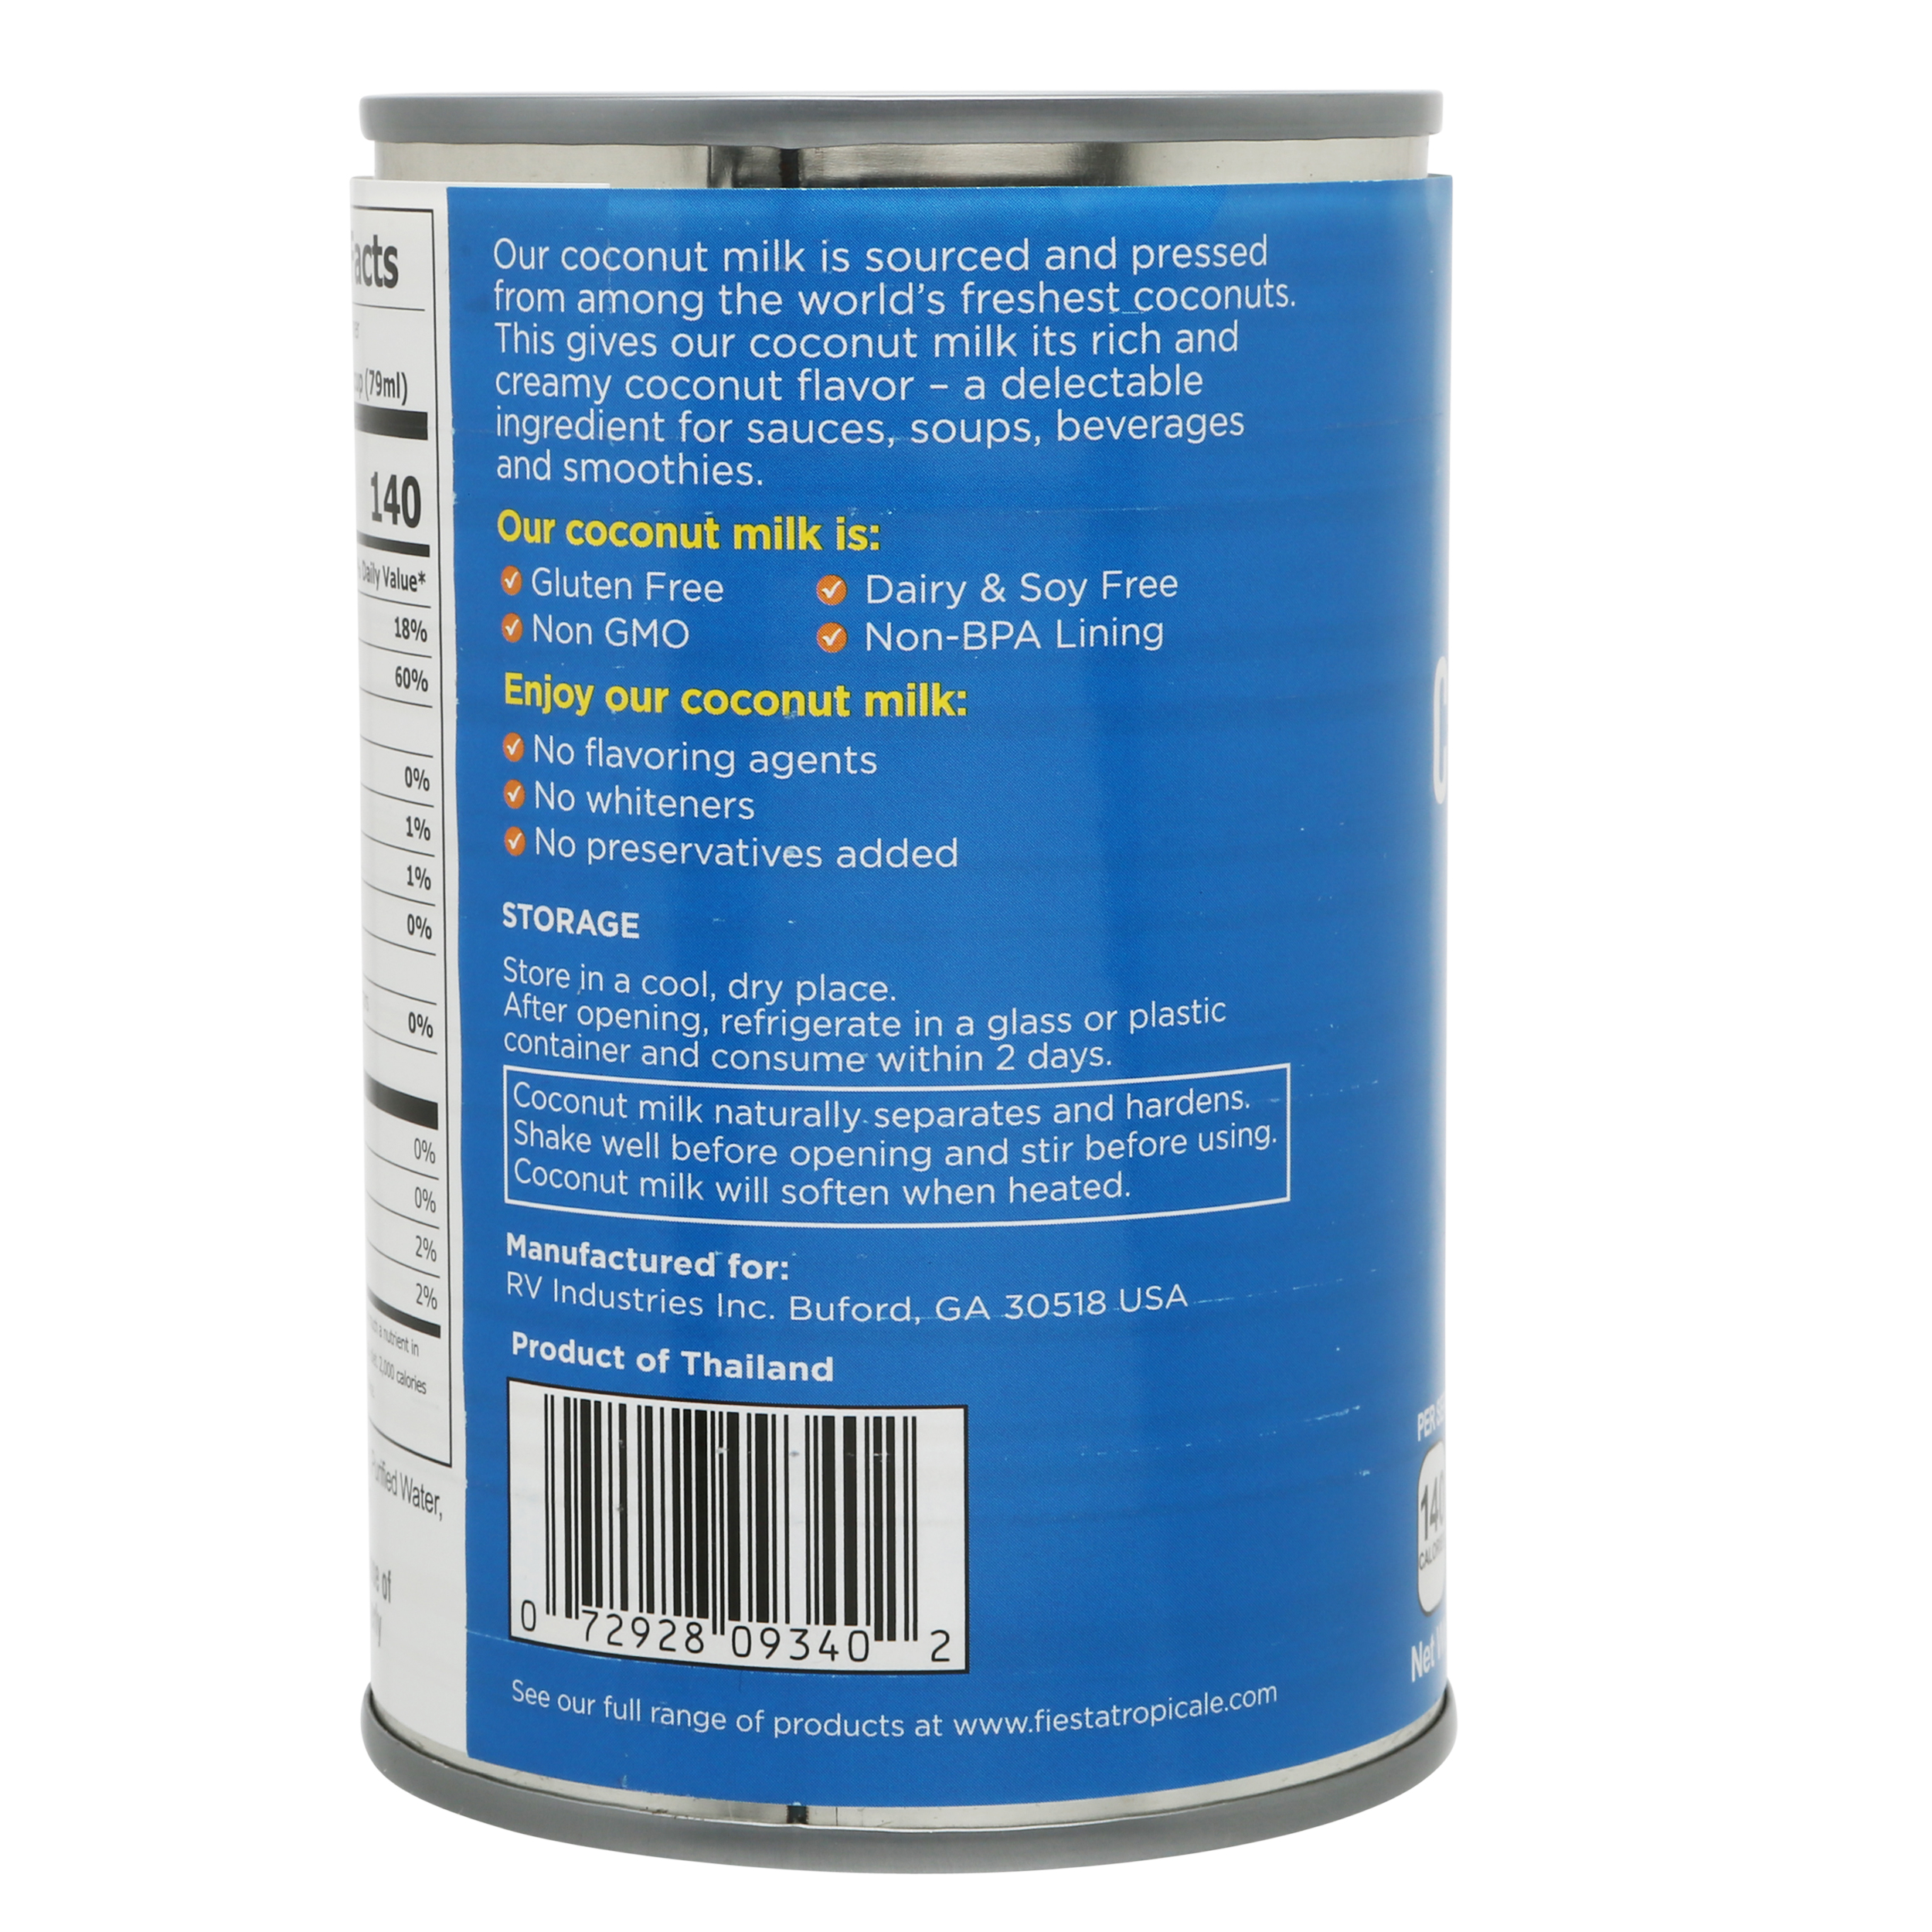 Fiesta Tropicale Coconut Milk_Back of Can